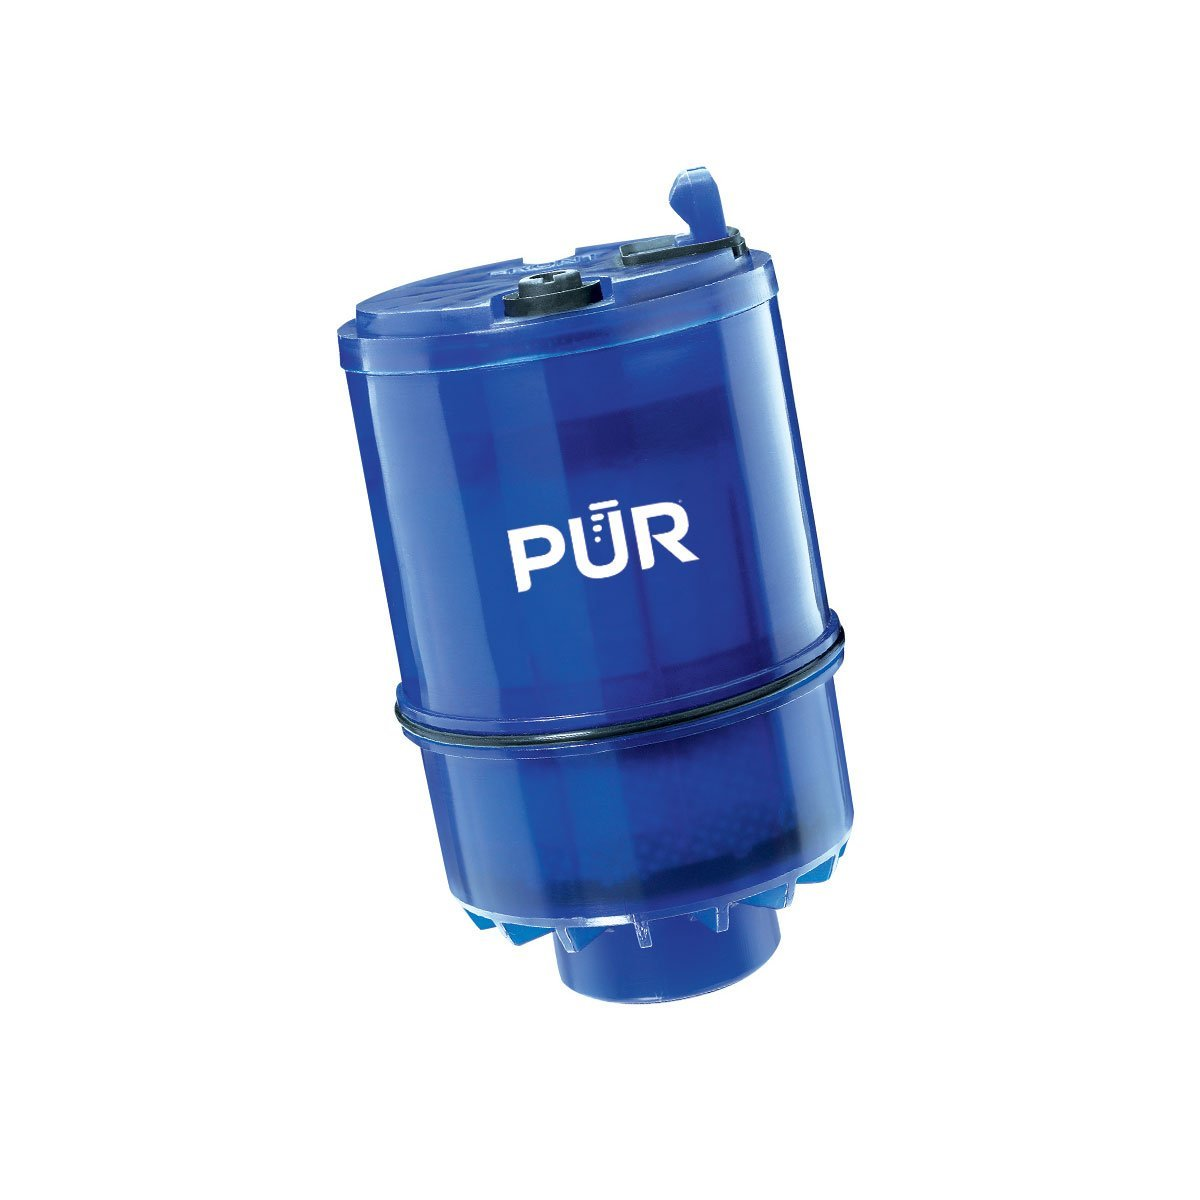 РUR Genuine RF-9999 Water Filter (6-Pack), Compatible with Pur RF-9999 Faucet Replacement Water Filter (Pack of 6) by РUR (Image #2)